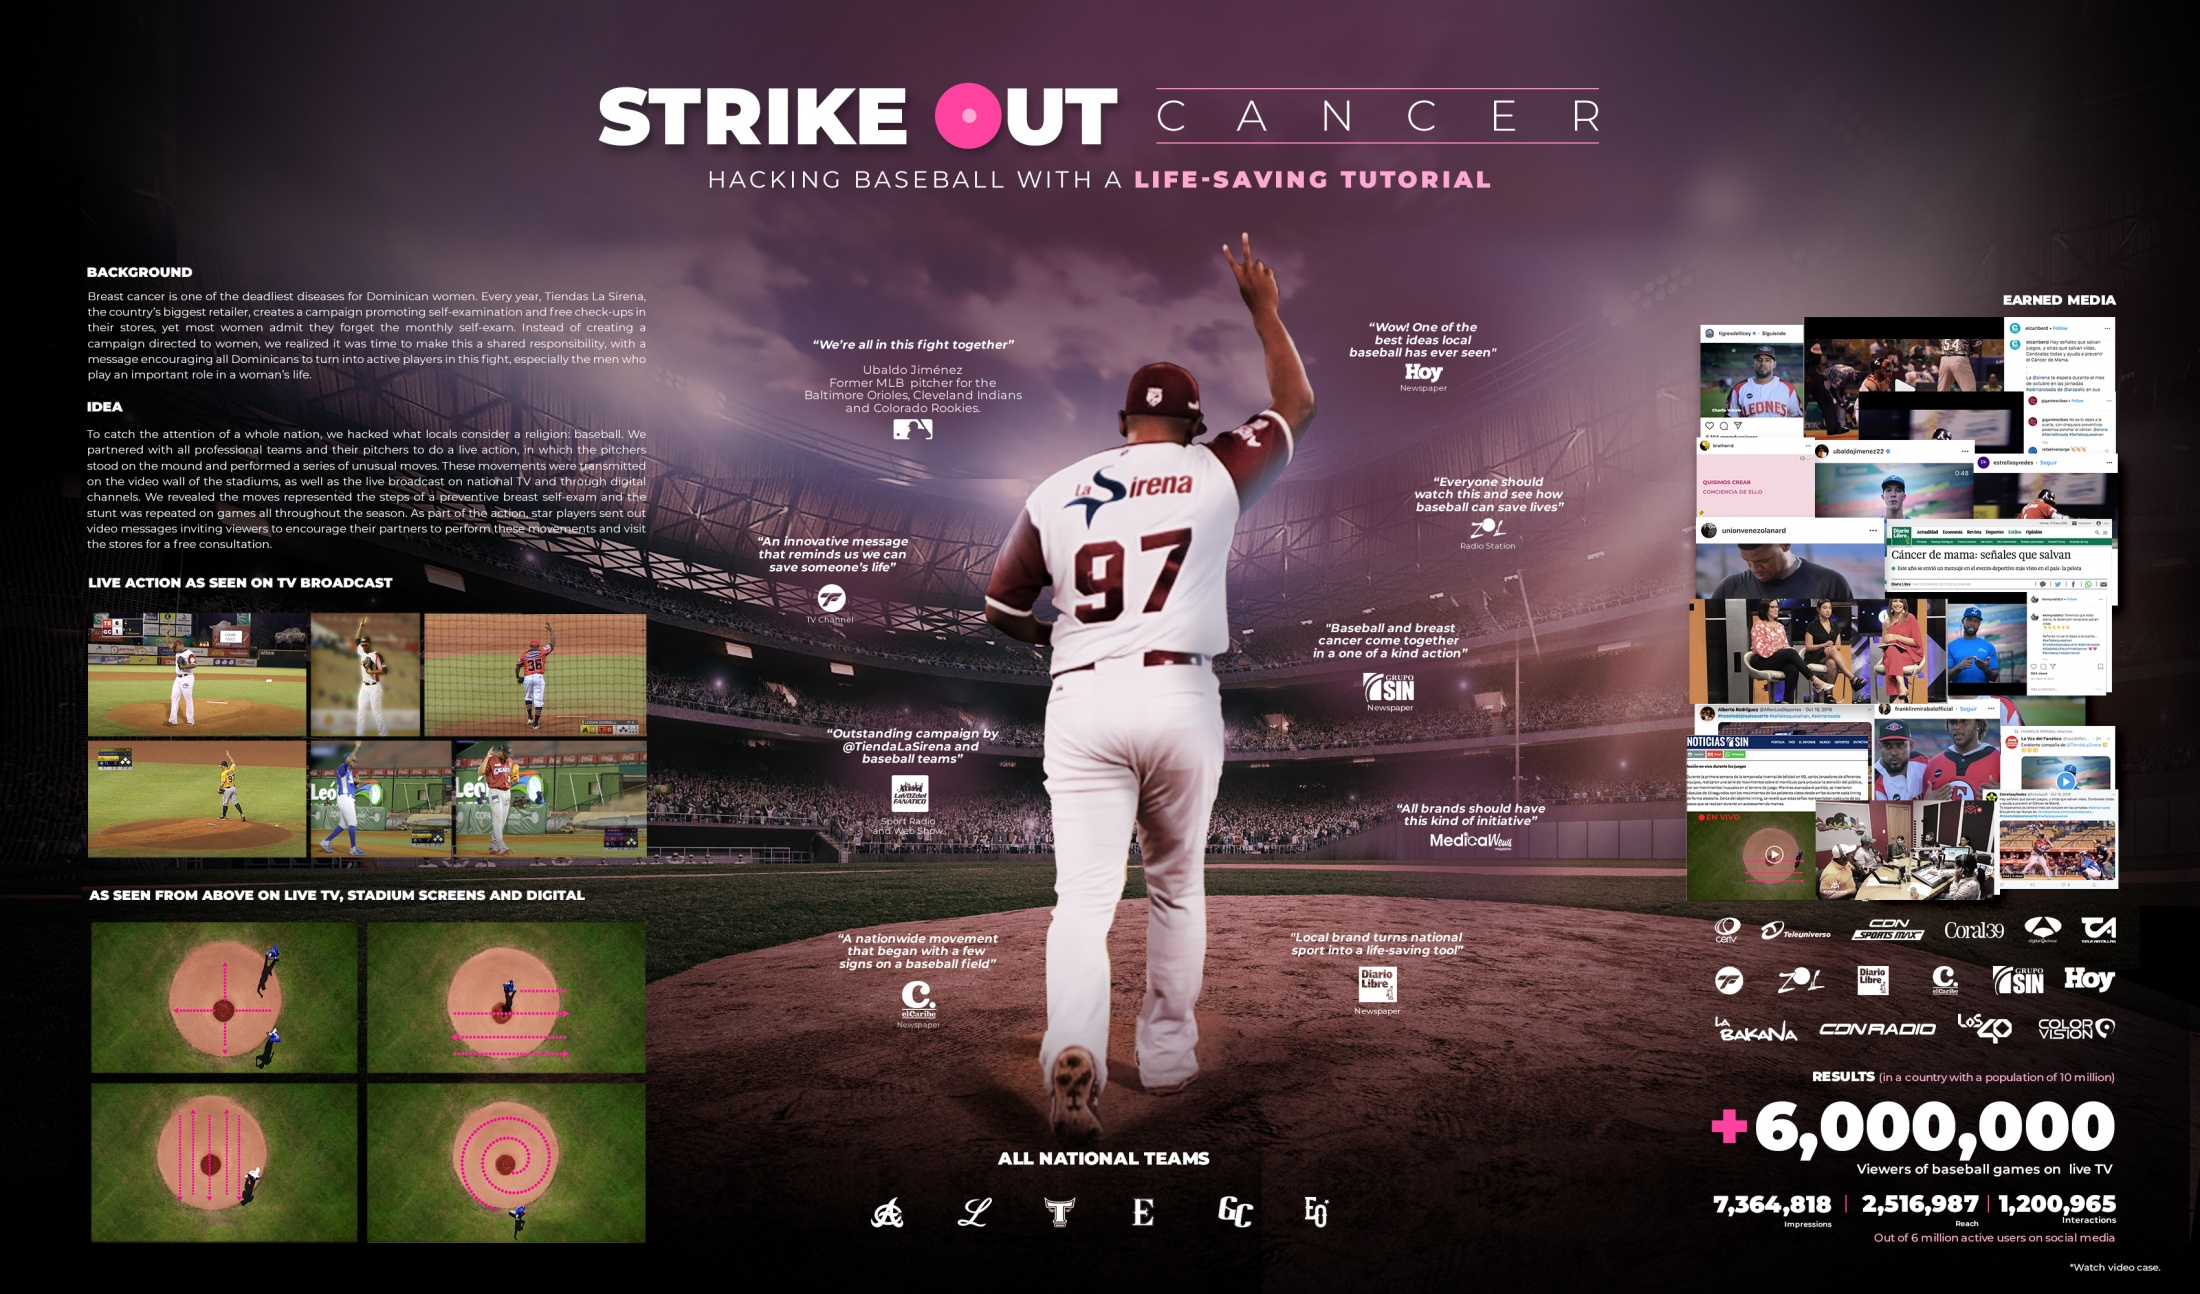 Thumbnail for Strikeout Cancer